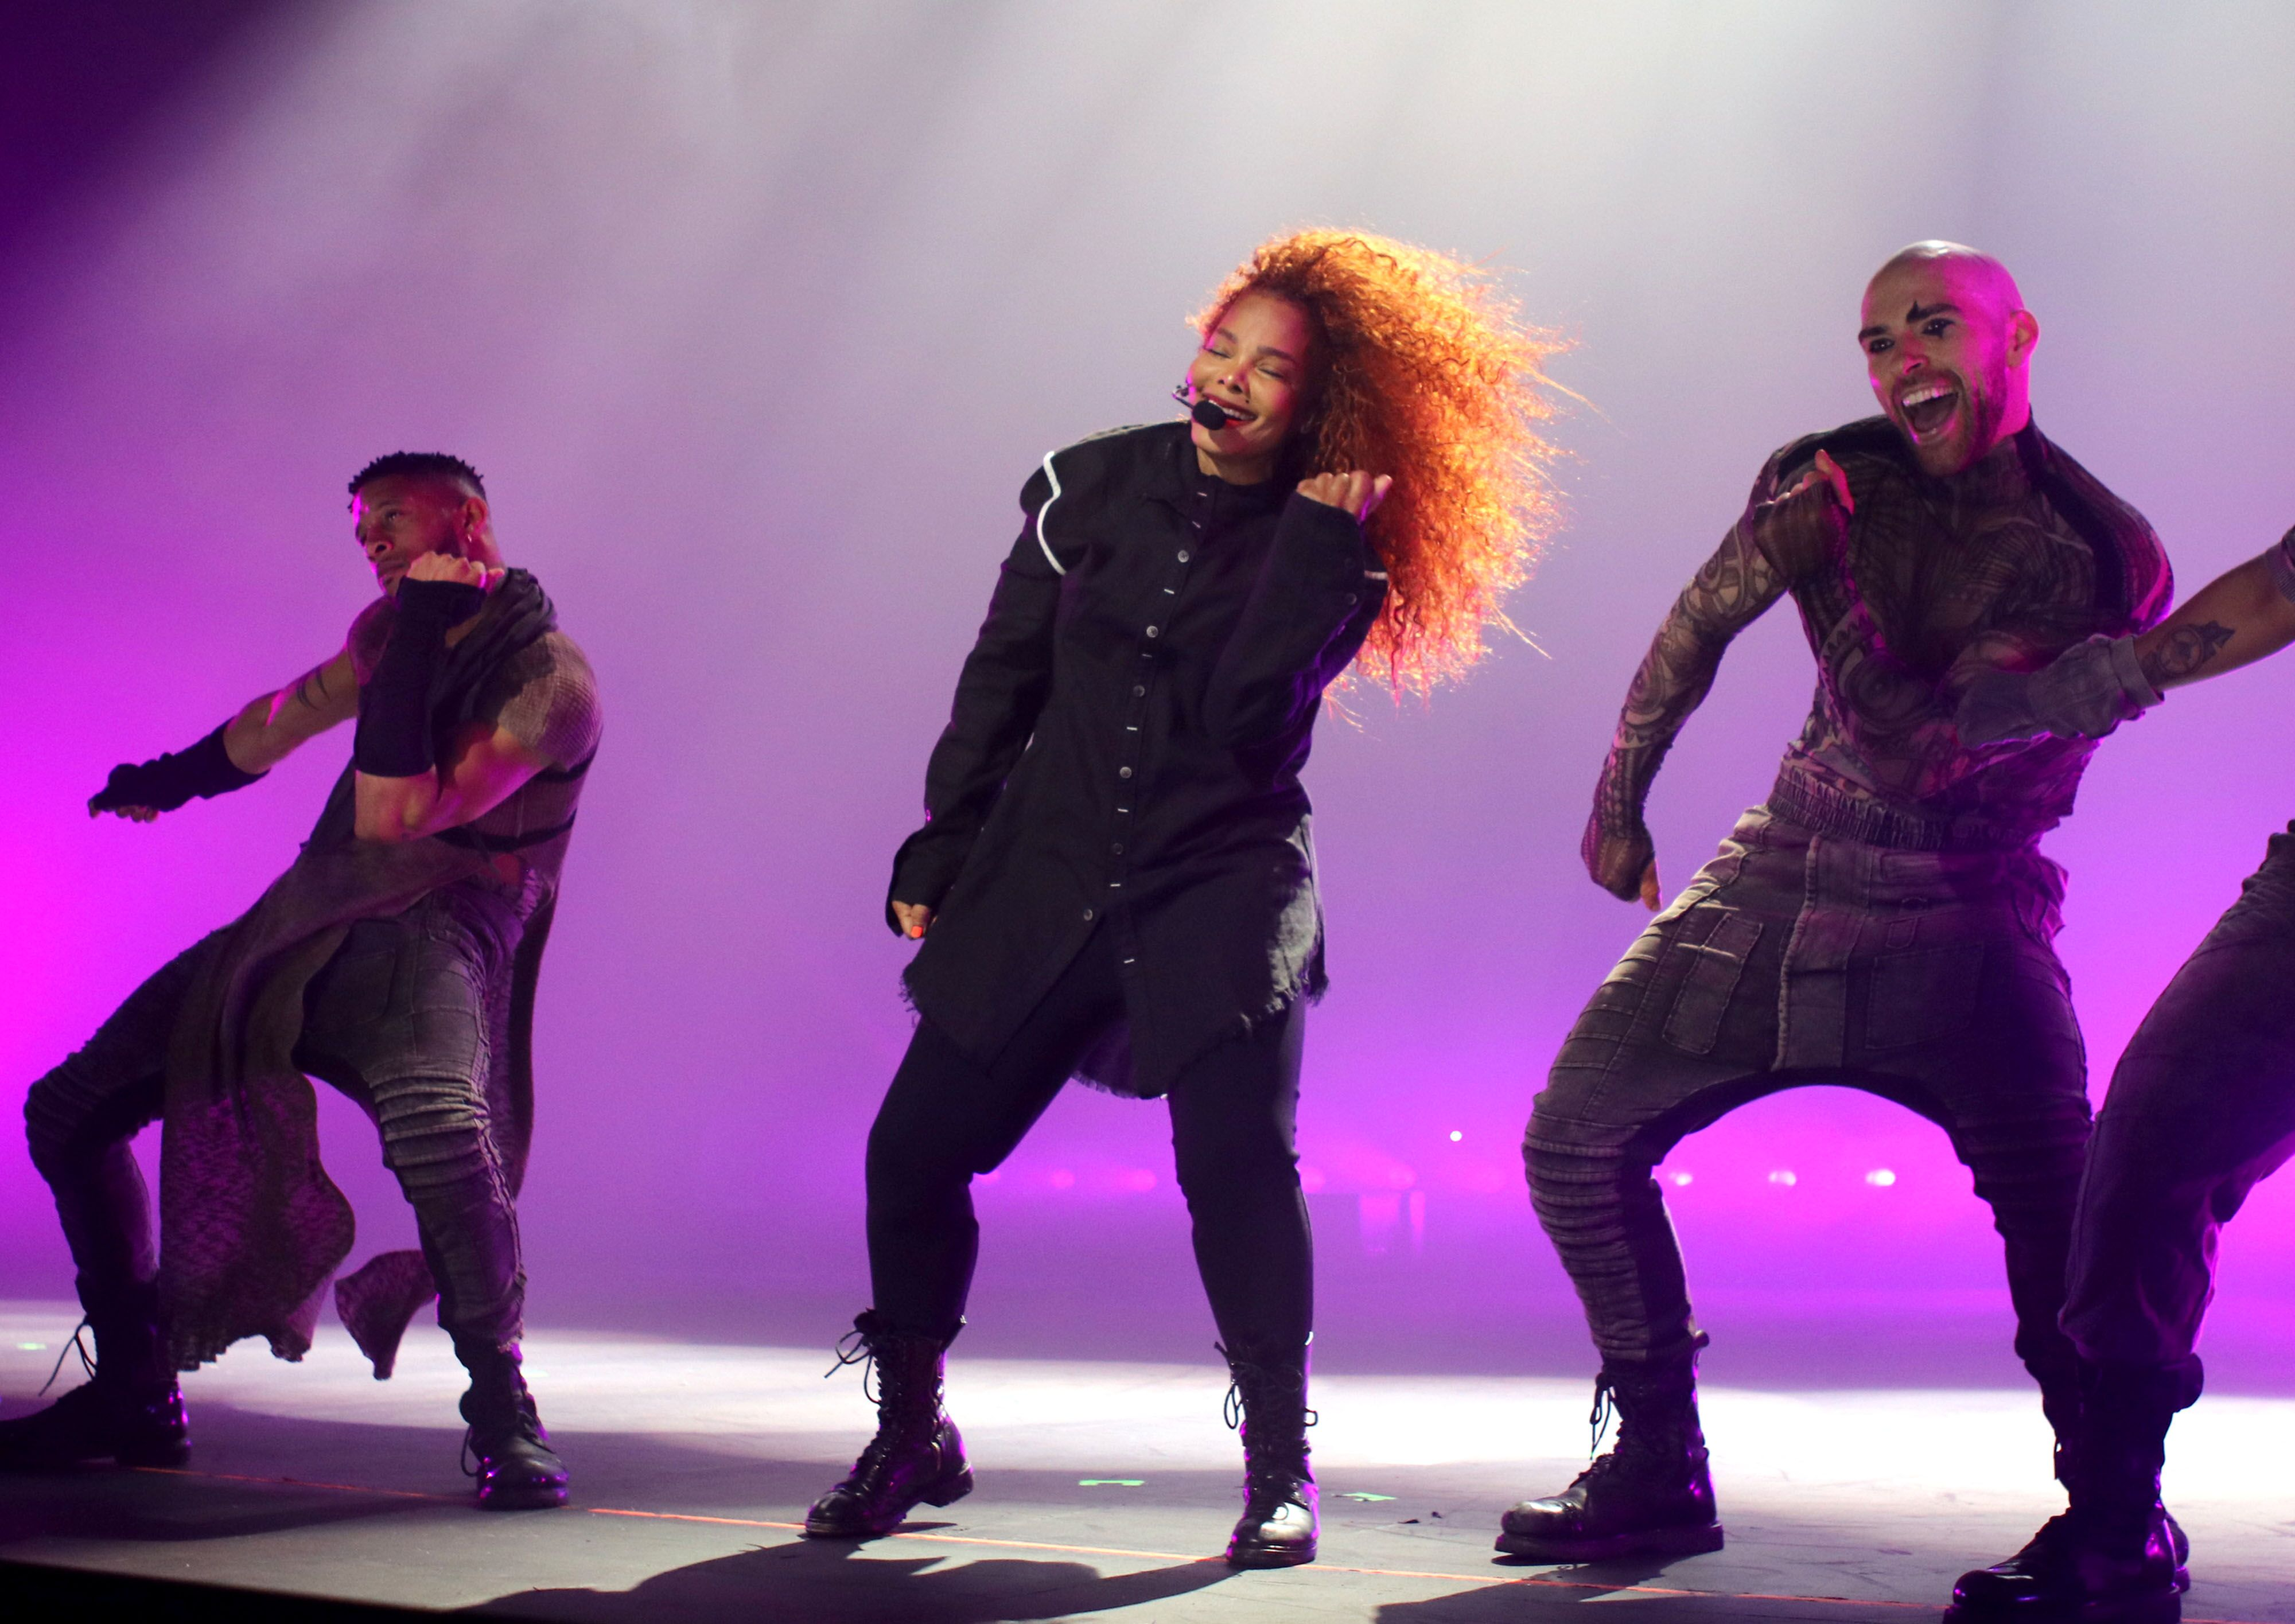 R&B star Janet Jackson performing during her 2019 Concert Tour in Australia / Source: Getty Images